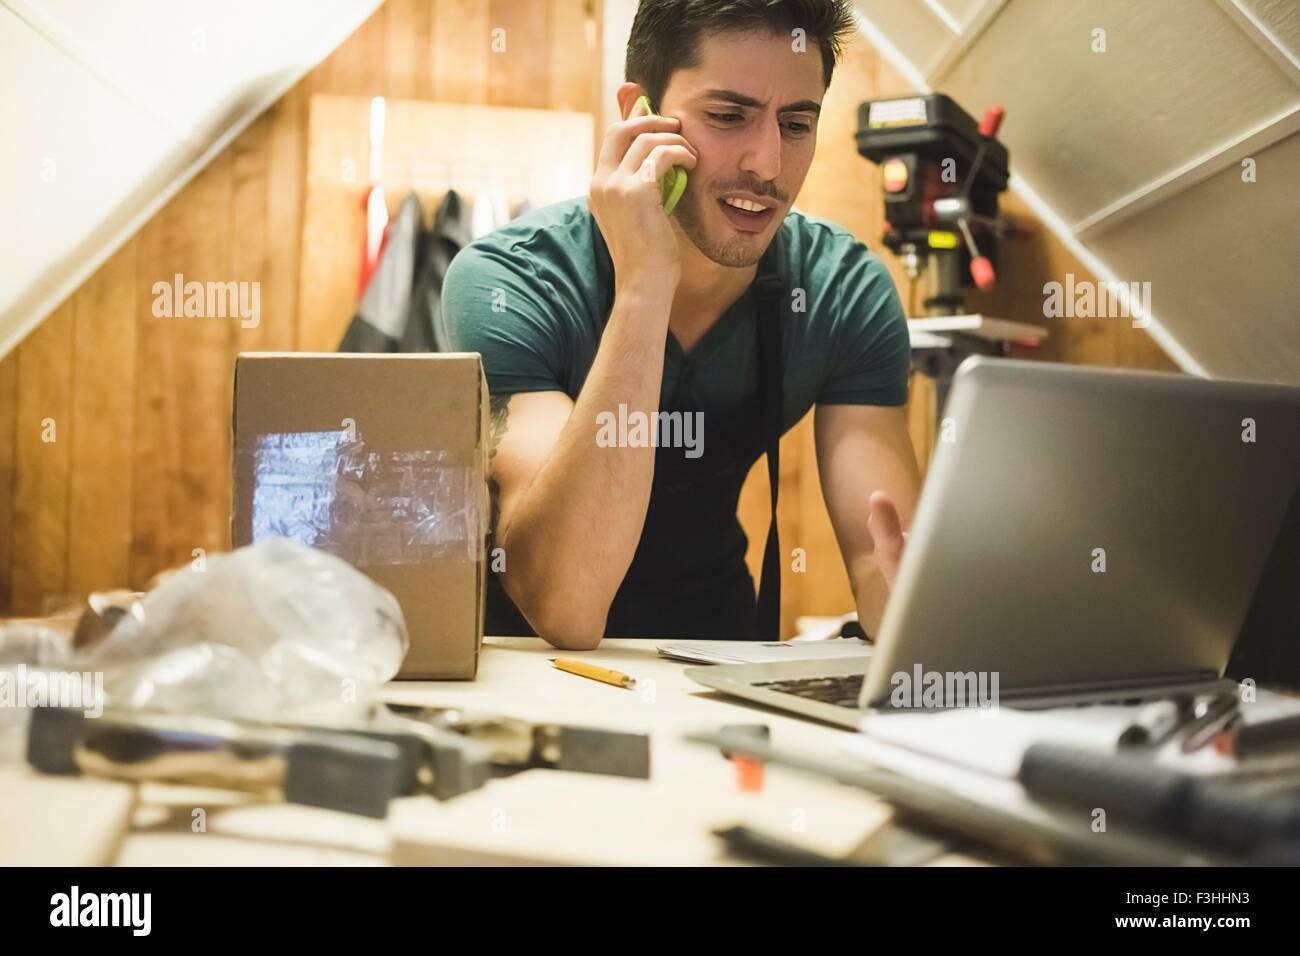 Young man in workshop sitting at desk talking on telephone looking at laptop - Stock Image